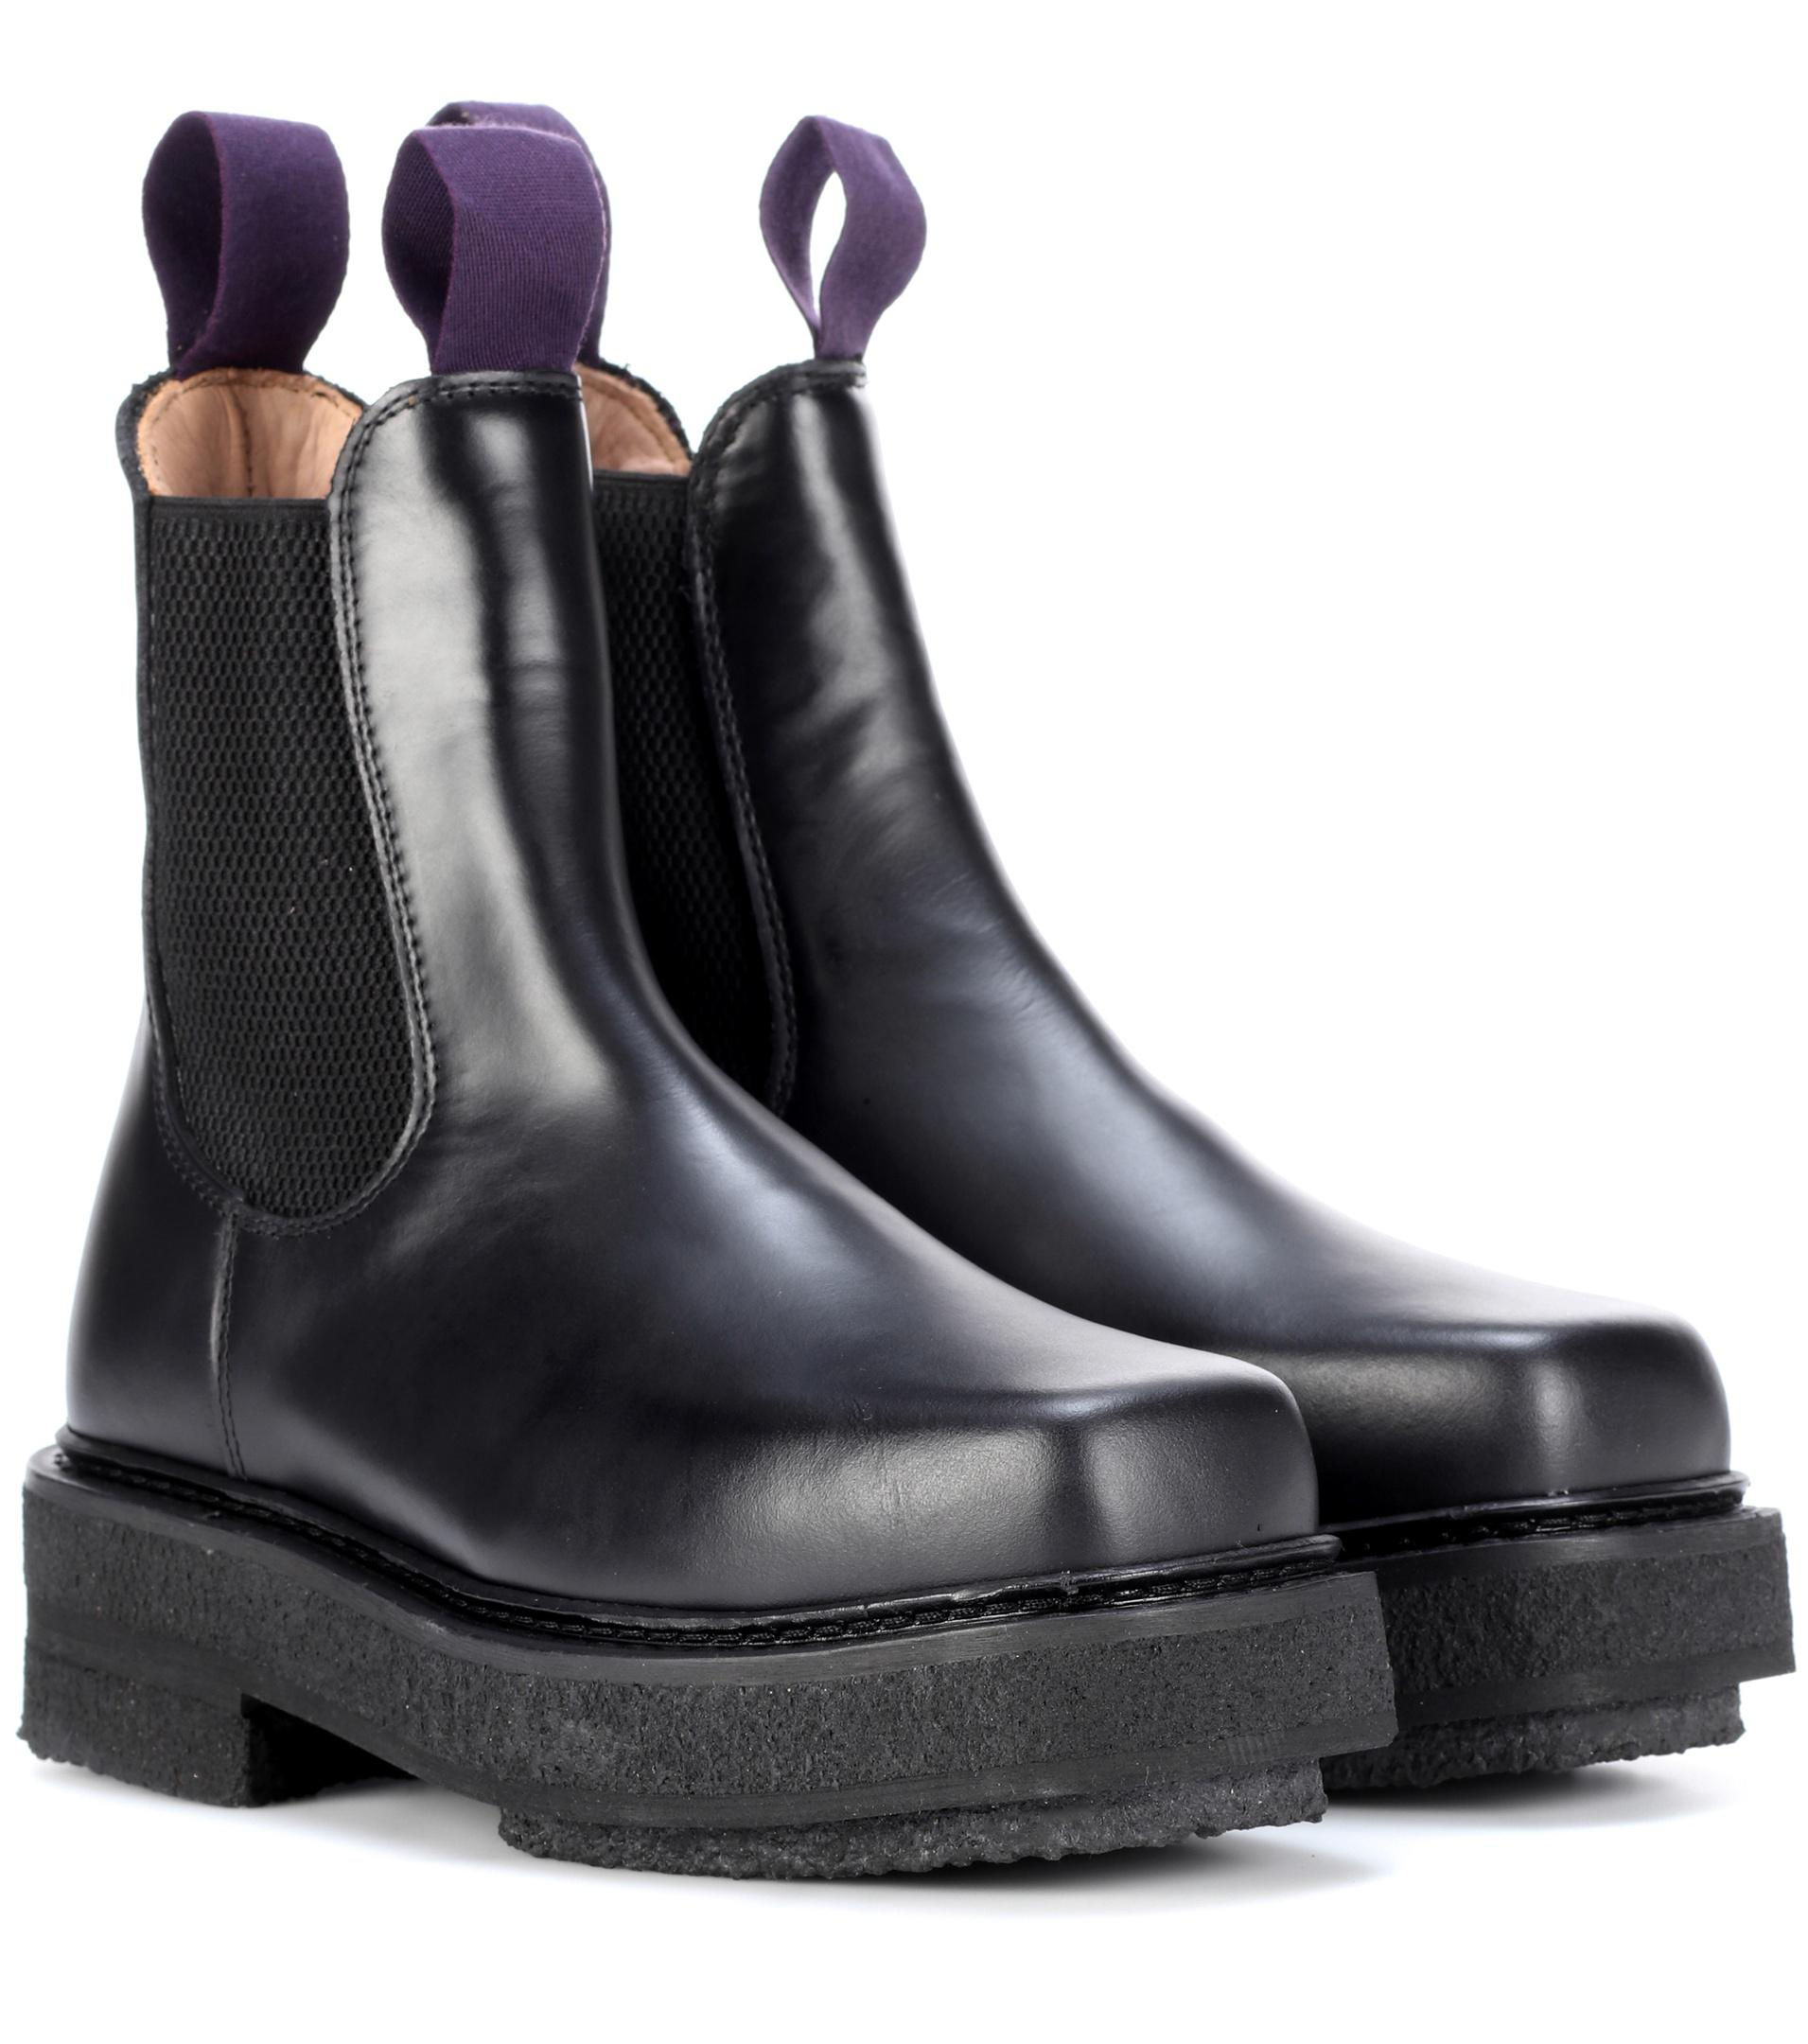 deft design diversified in packaging fine quality Eytys Black Ortega Leather Ankle Boots